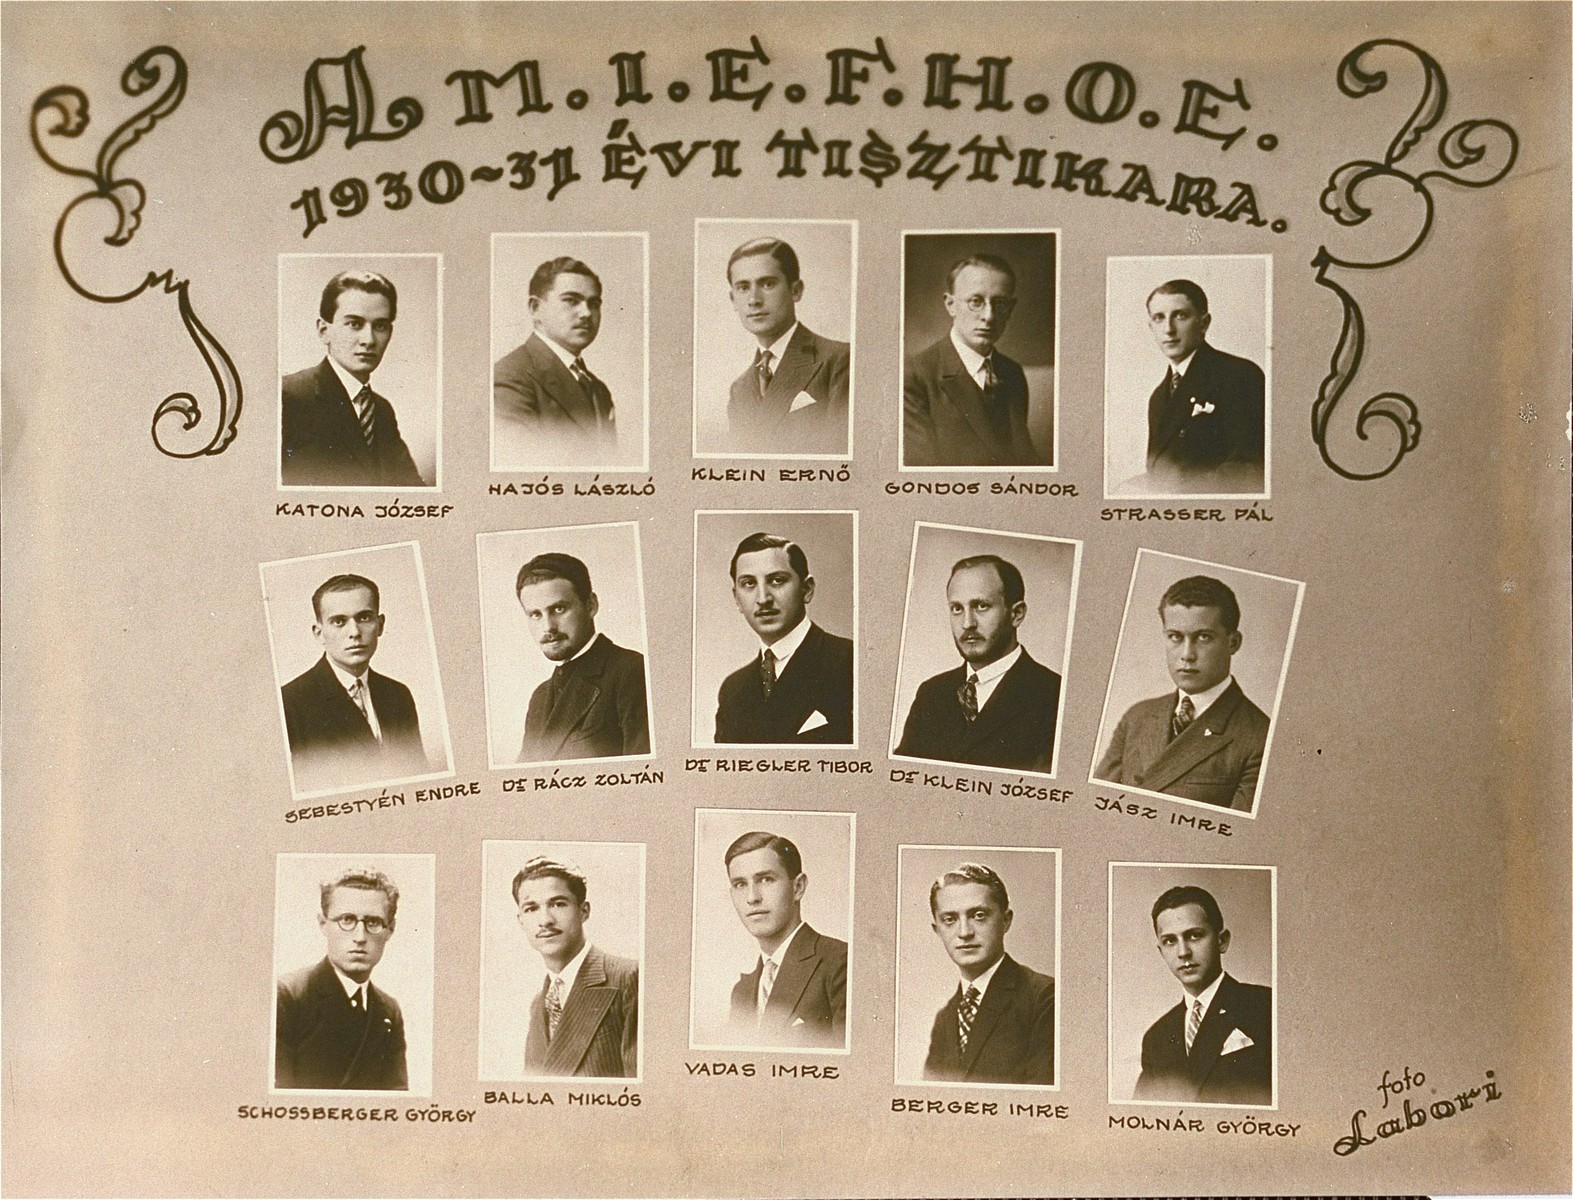 Portraits of the leaders of the Association of Hungarian Israelite University Students (Magyar Izraelita Foiskolai Hallgatok Orszagos Egyesulete).